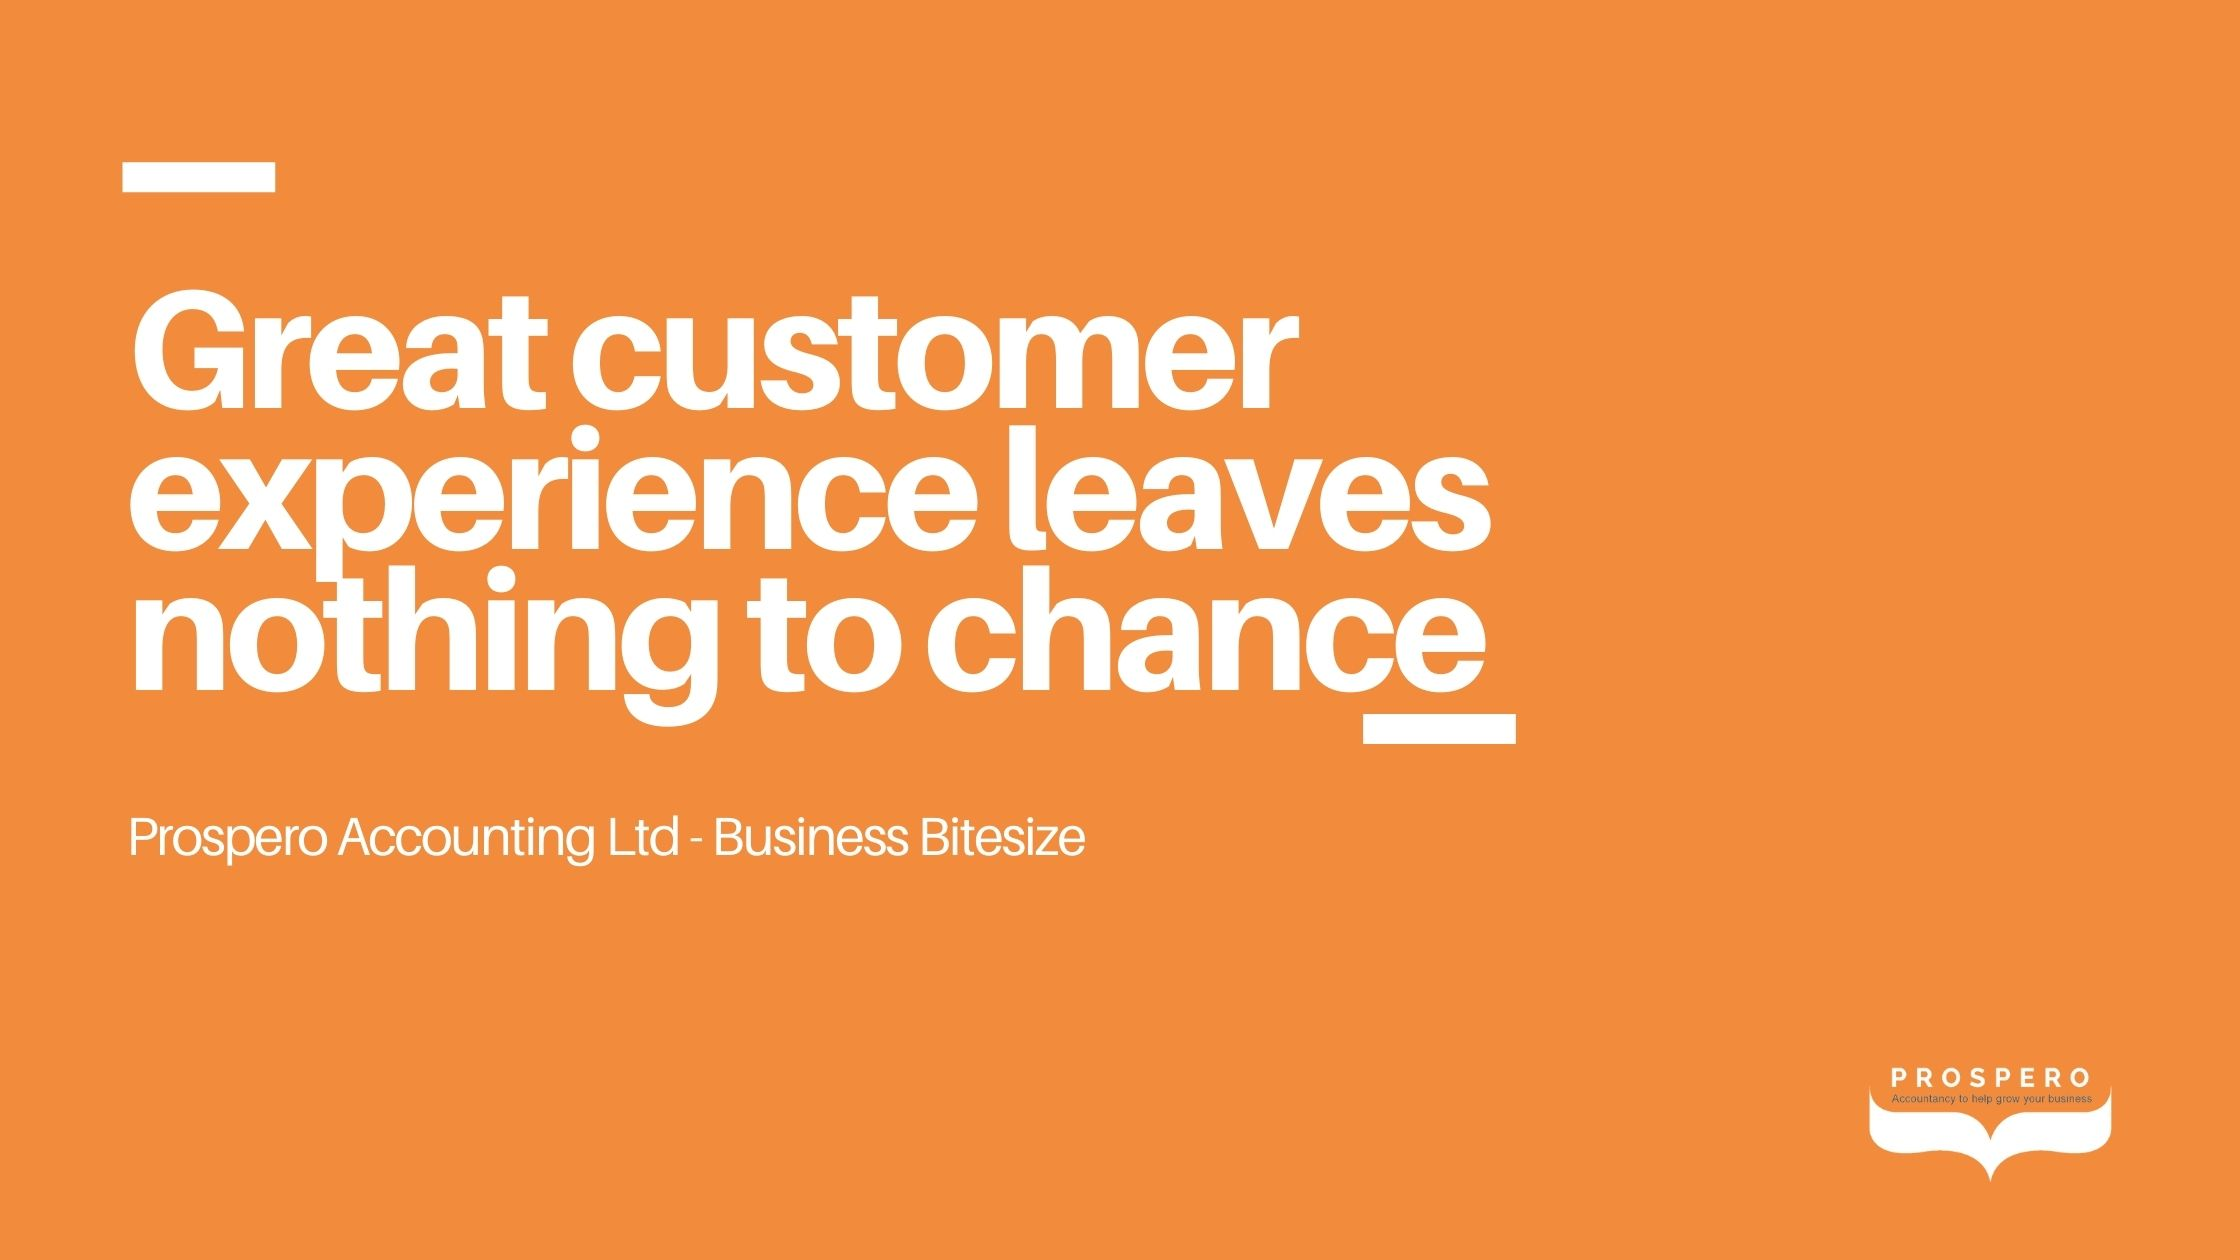 Business Bitesize - Great customer experience leaves nothing to chance